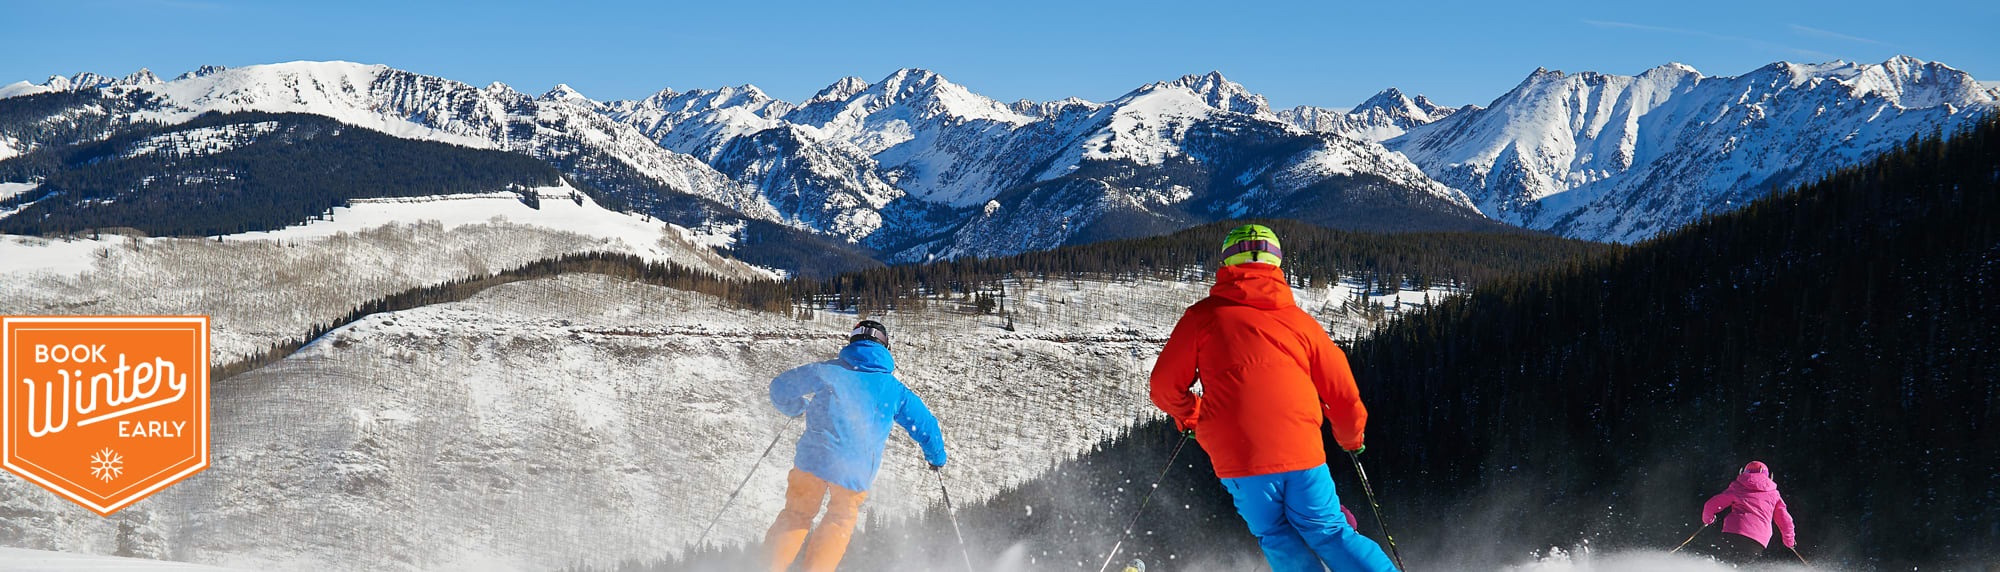 Colorado group skiing scenic view.